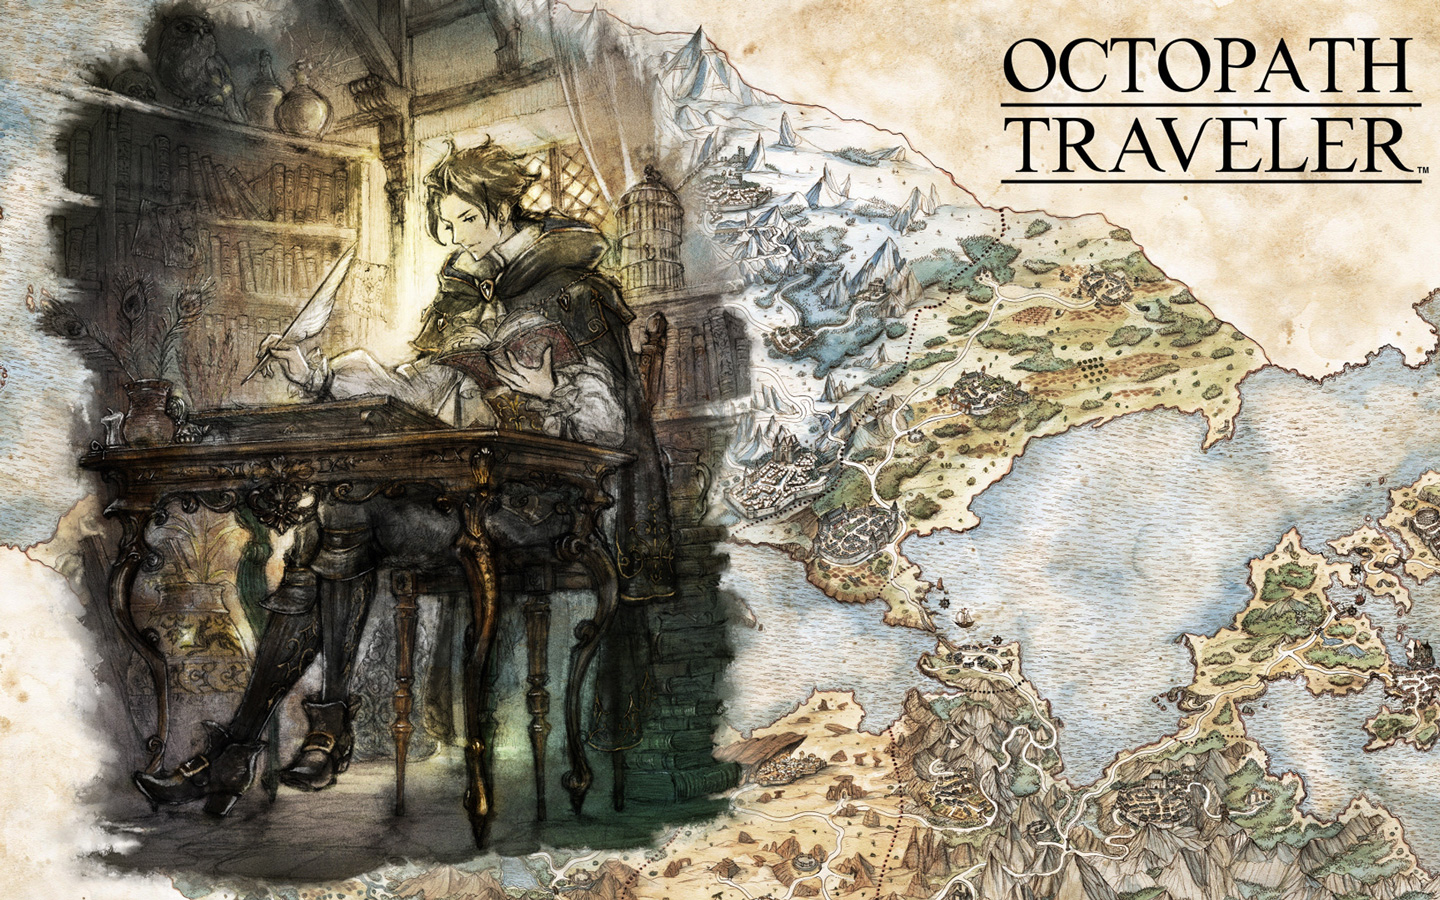 Free Octopath Traveler Wallpaper in 1440x900